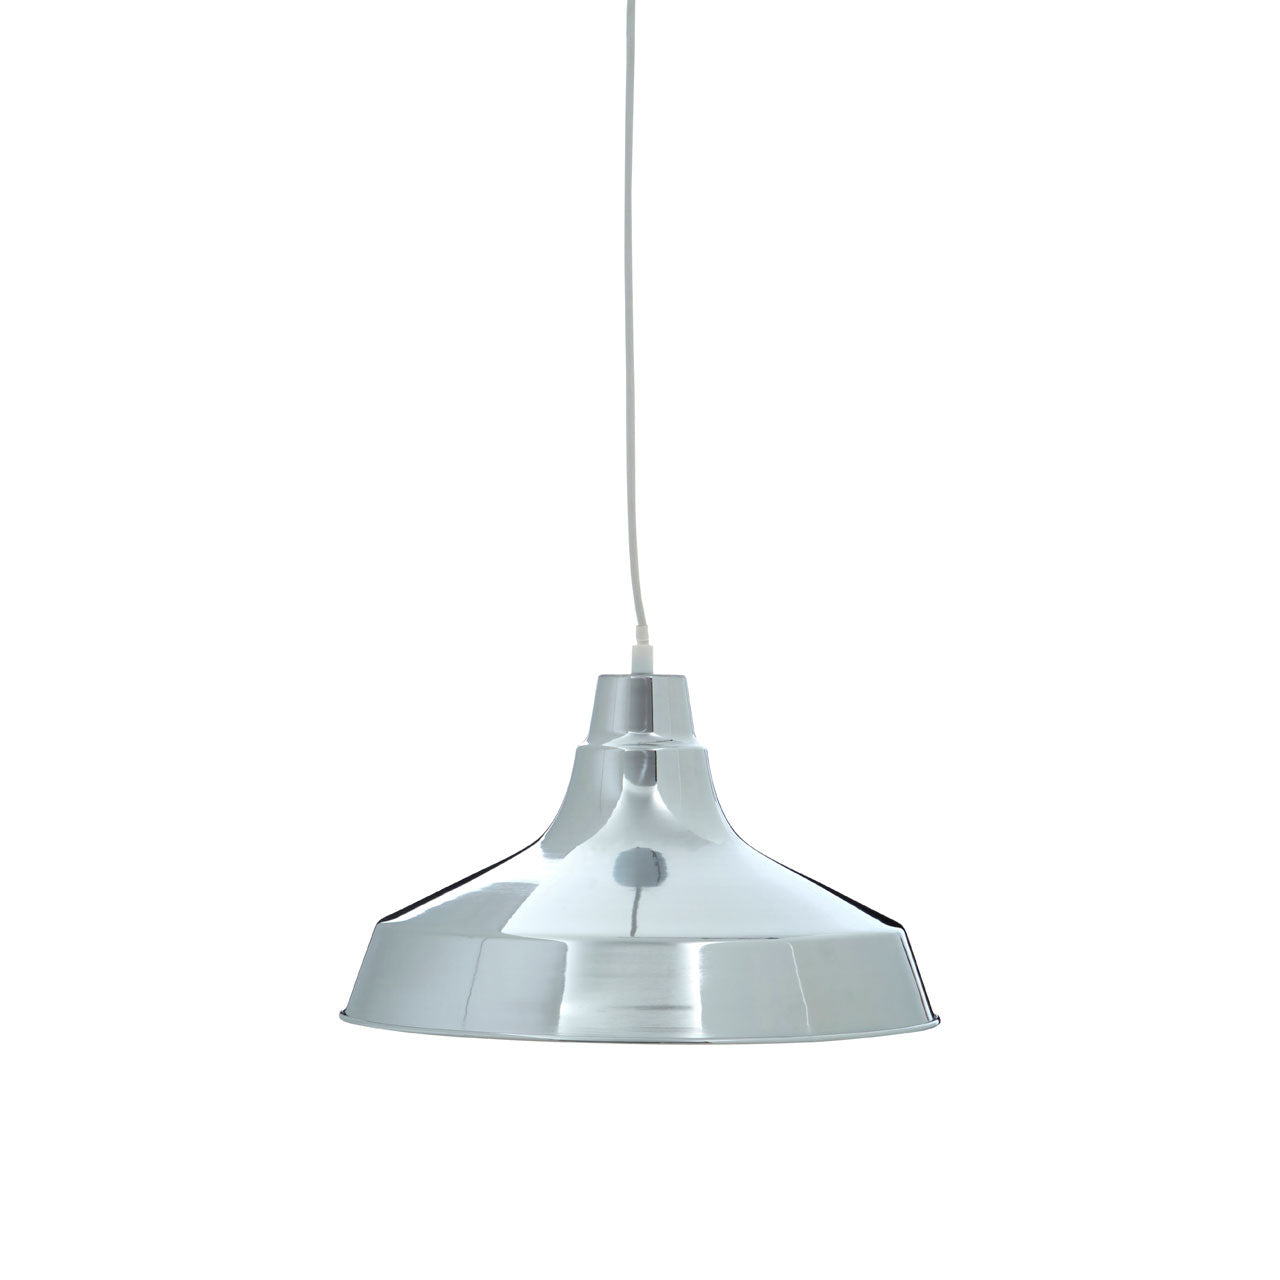 Brinn Pendant Light Chrome - Ezzo